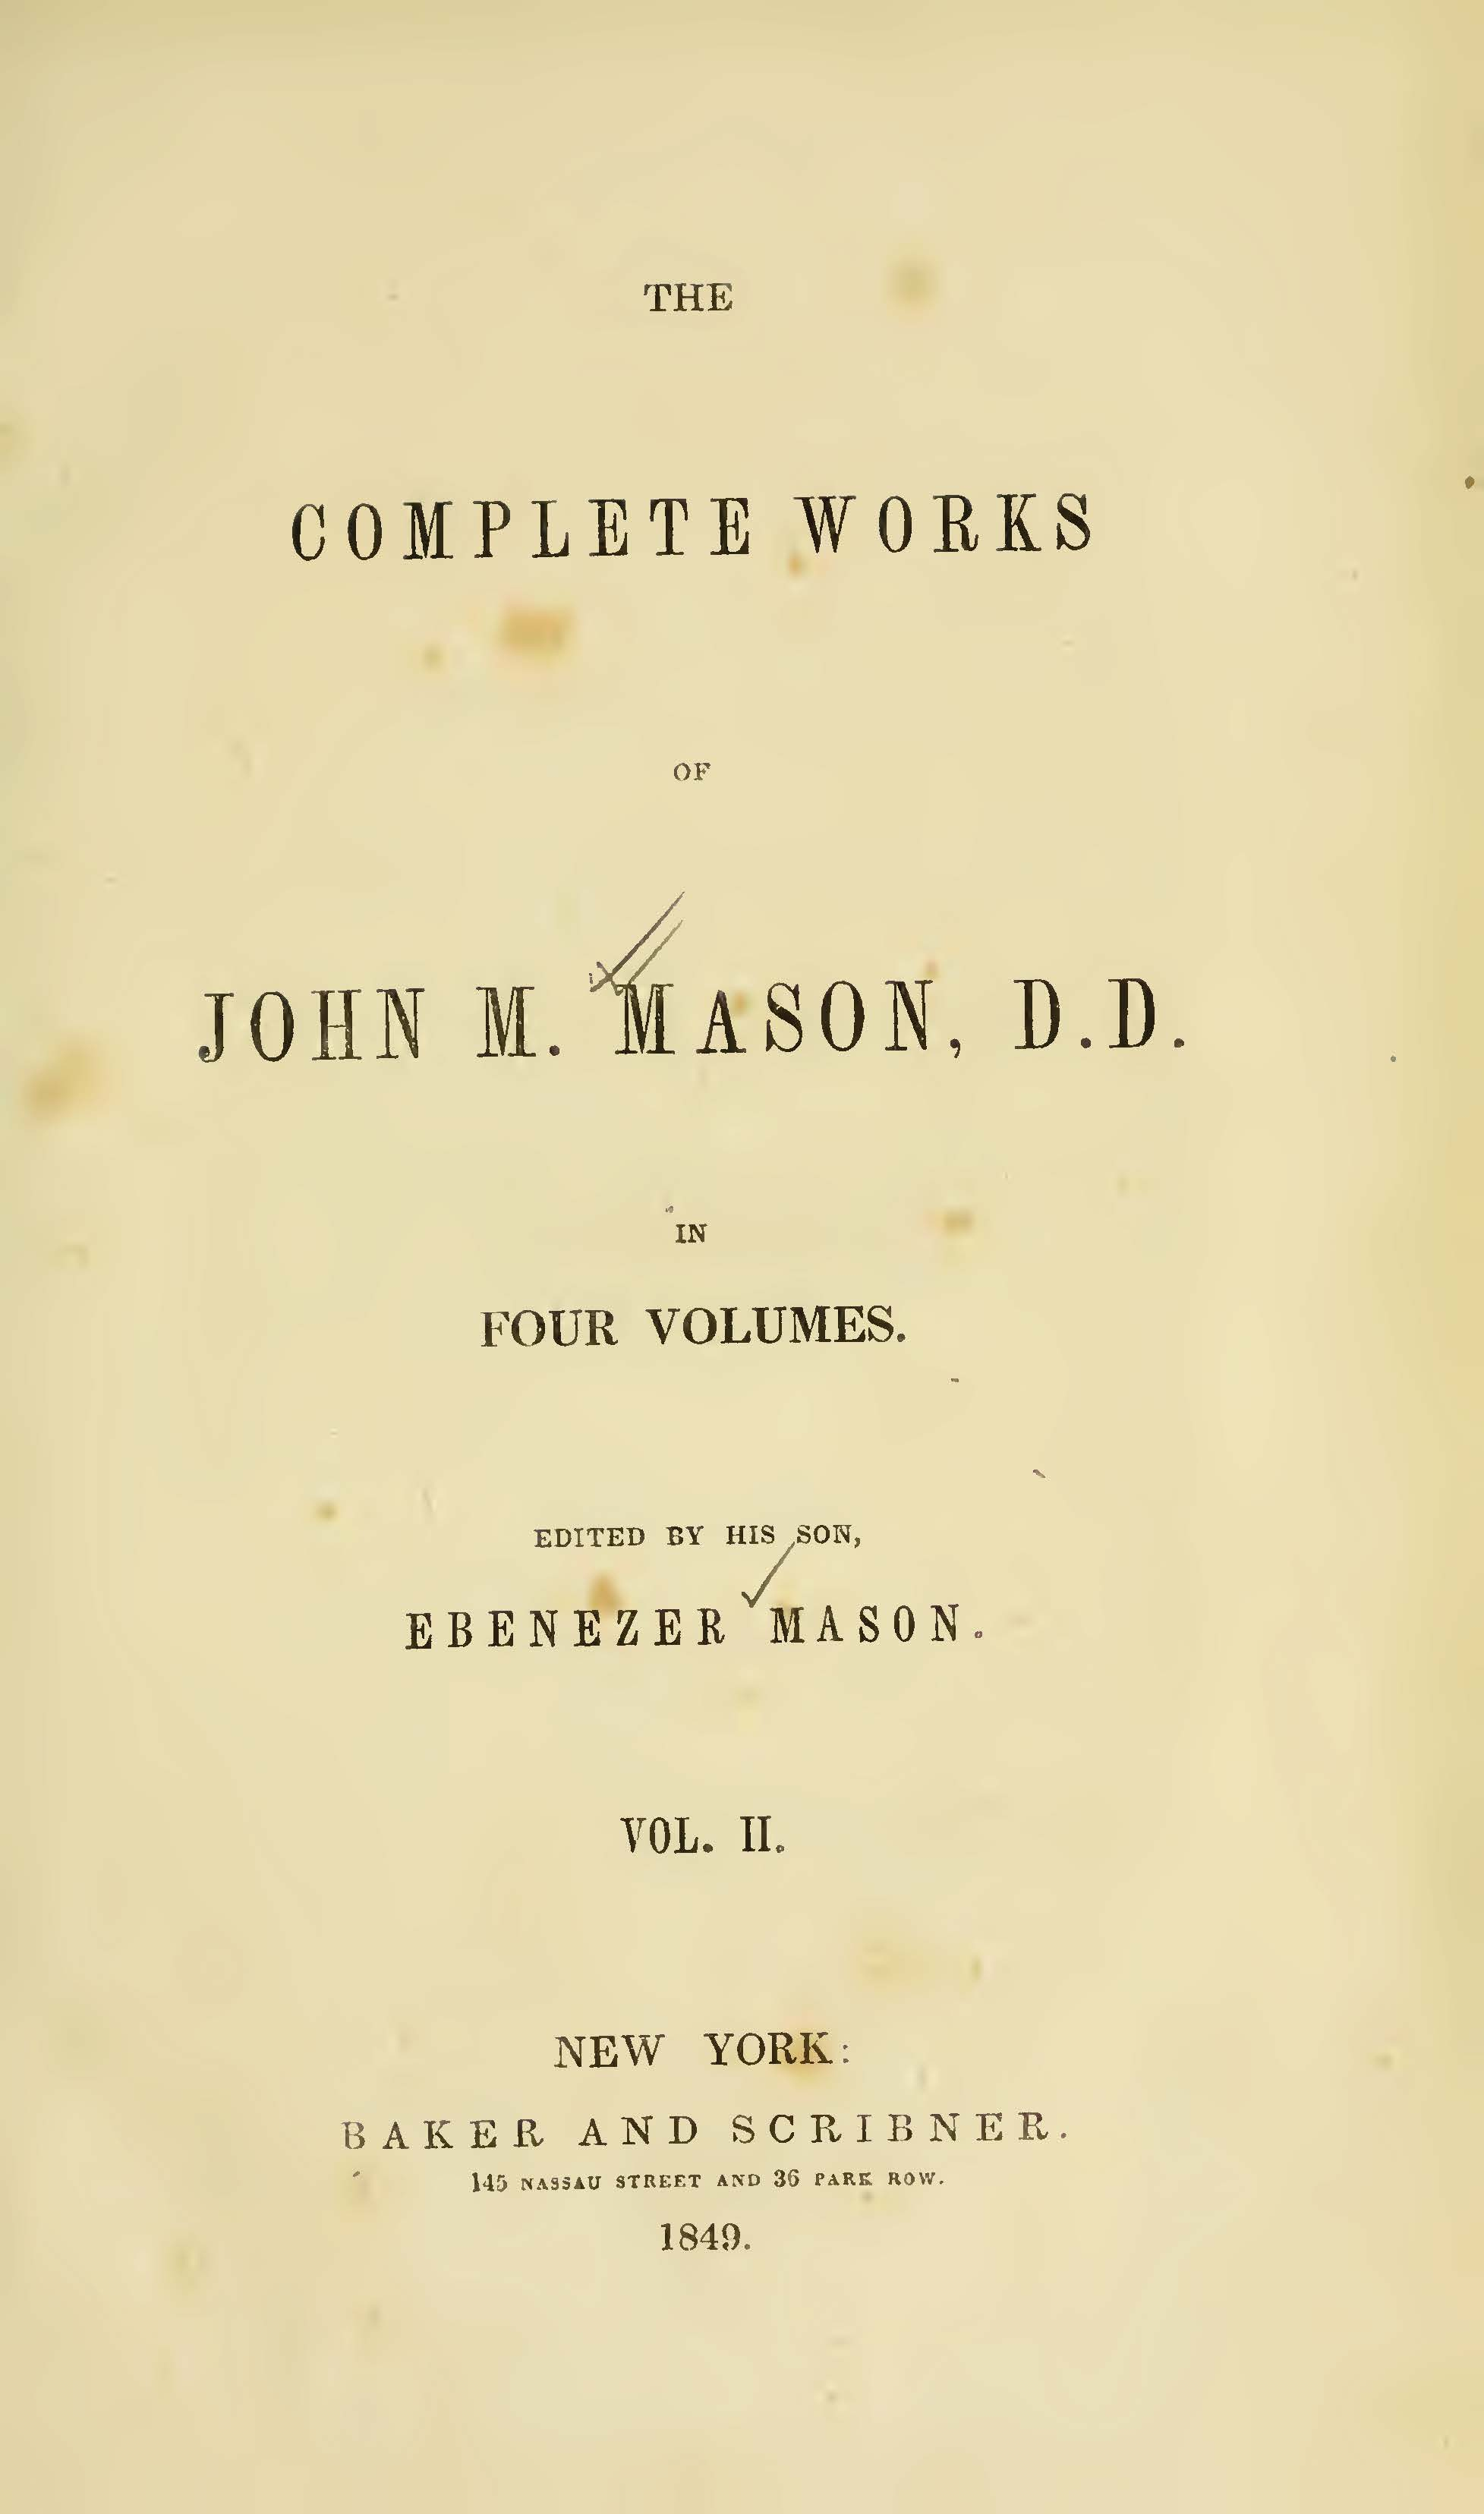 Mason, John Mitchell, The Complete Works of John M. Mason, D.D., Vol. 2 Title Page.jpg